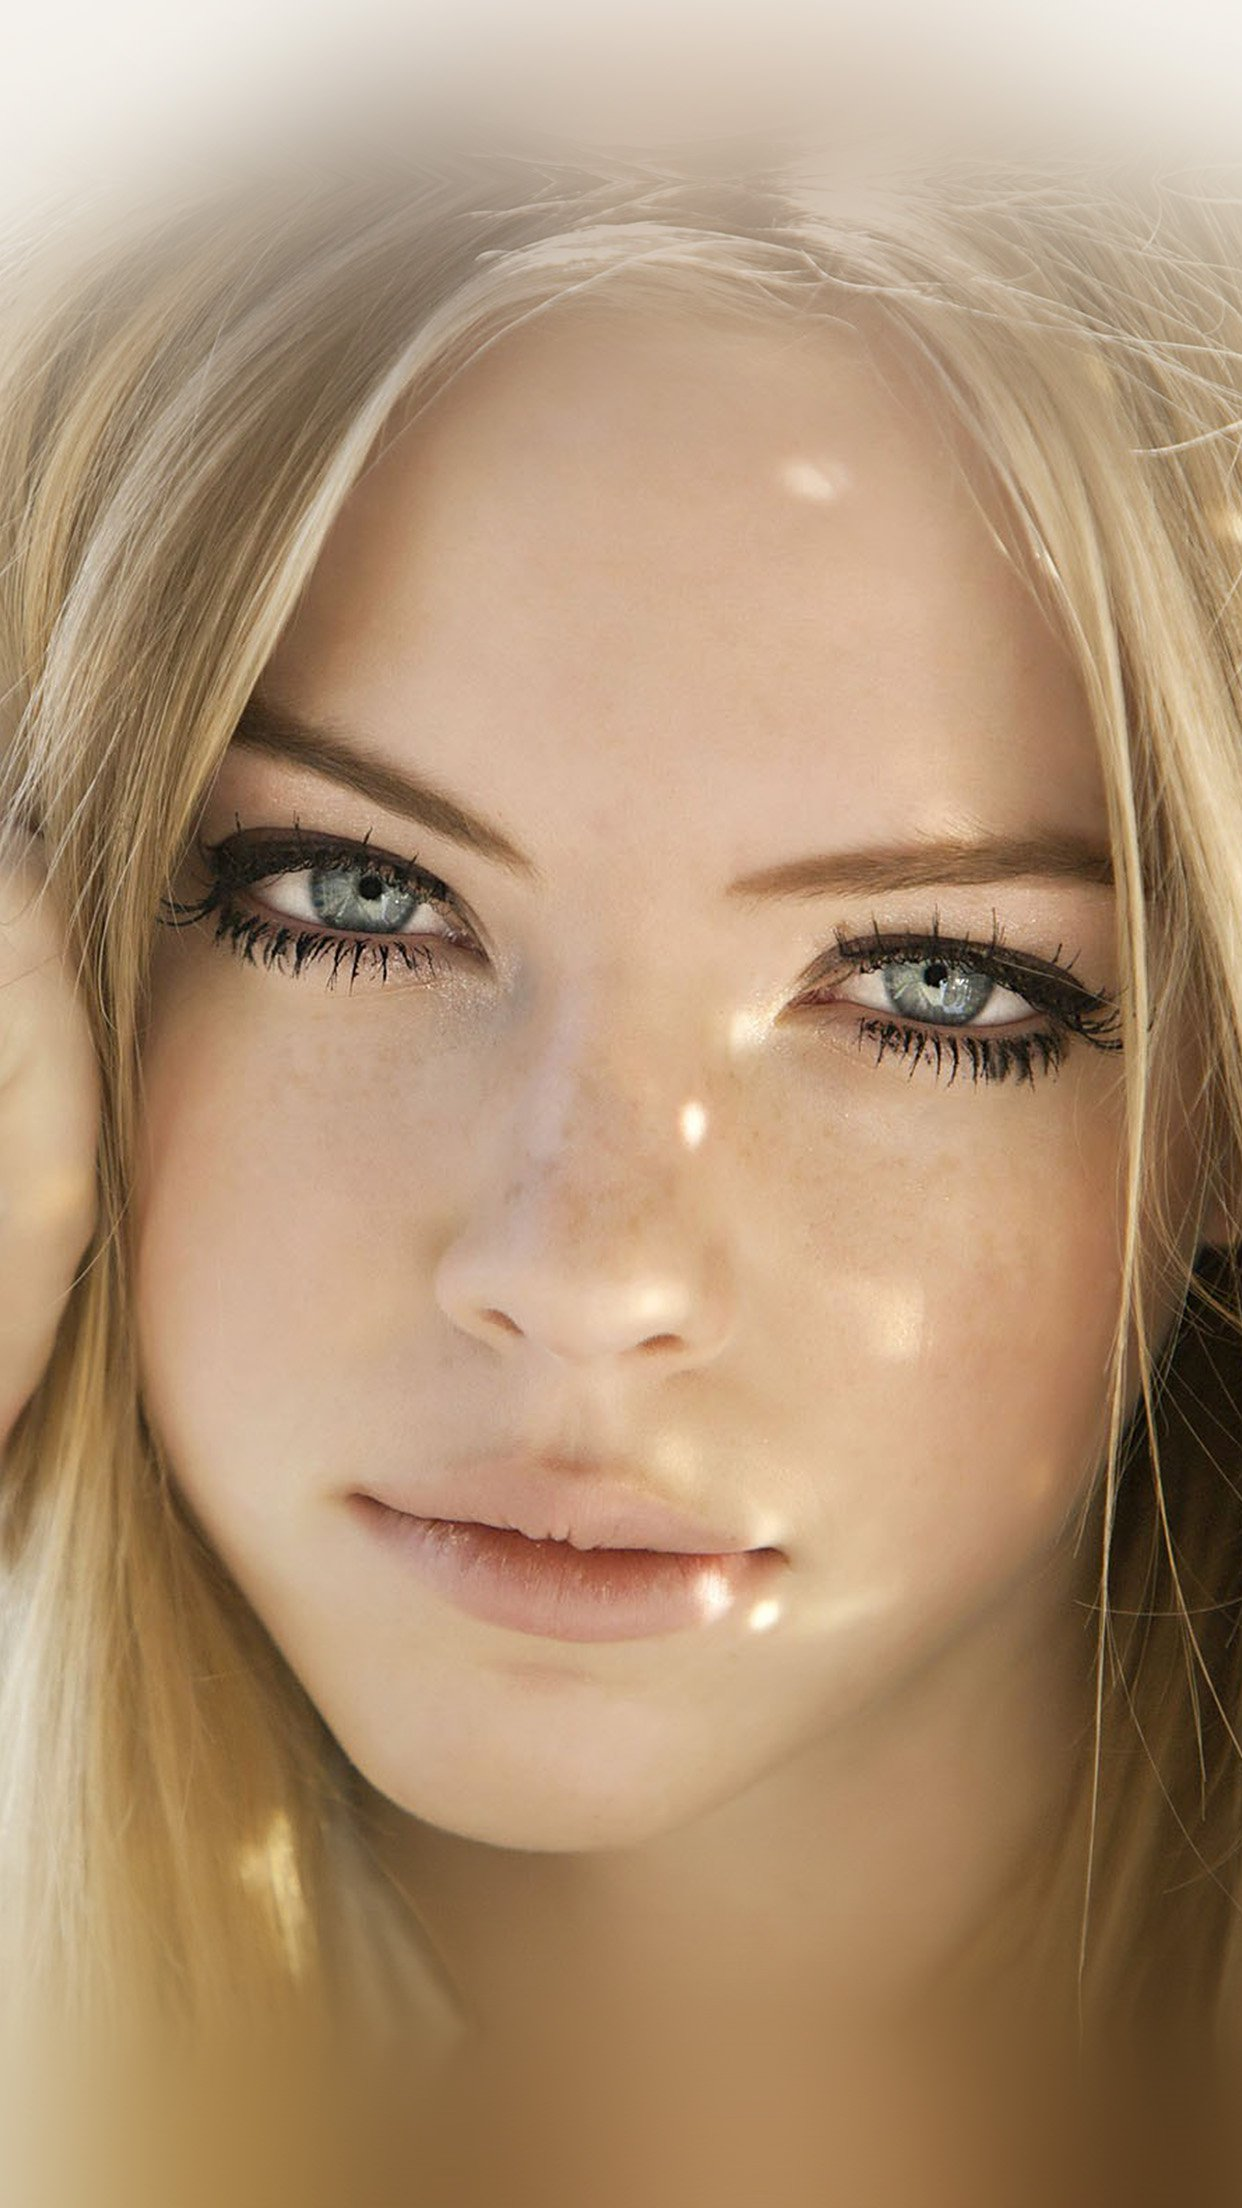 Girl Face Blonde Beauty Android wallpaper